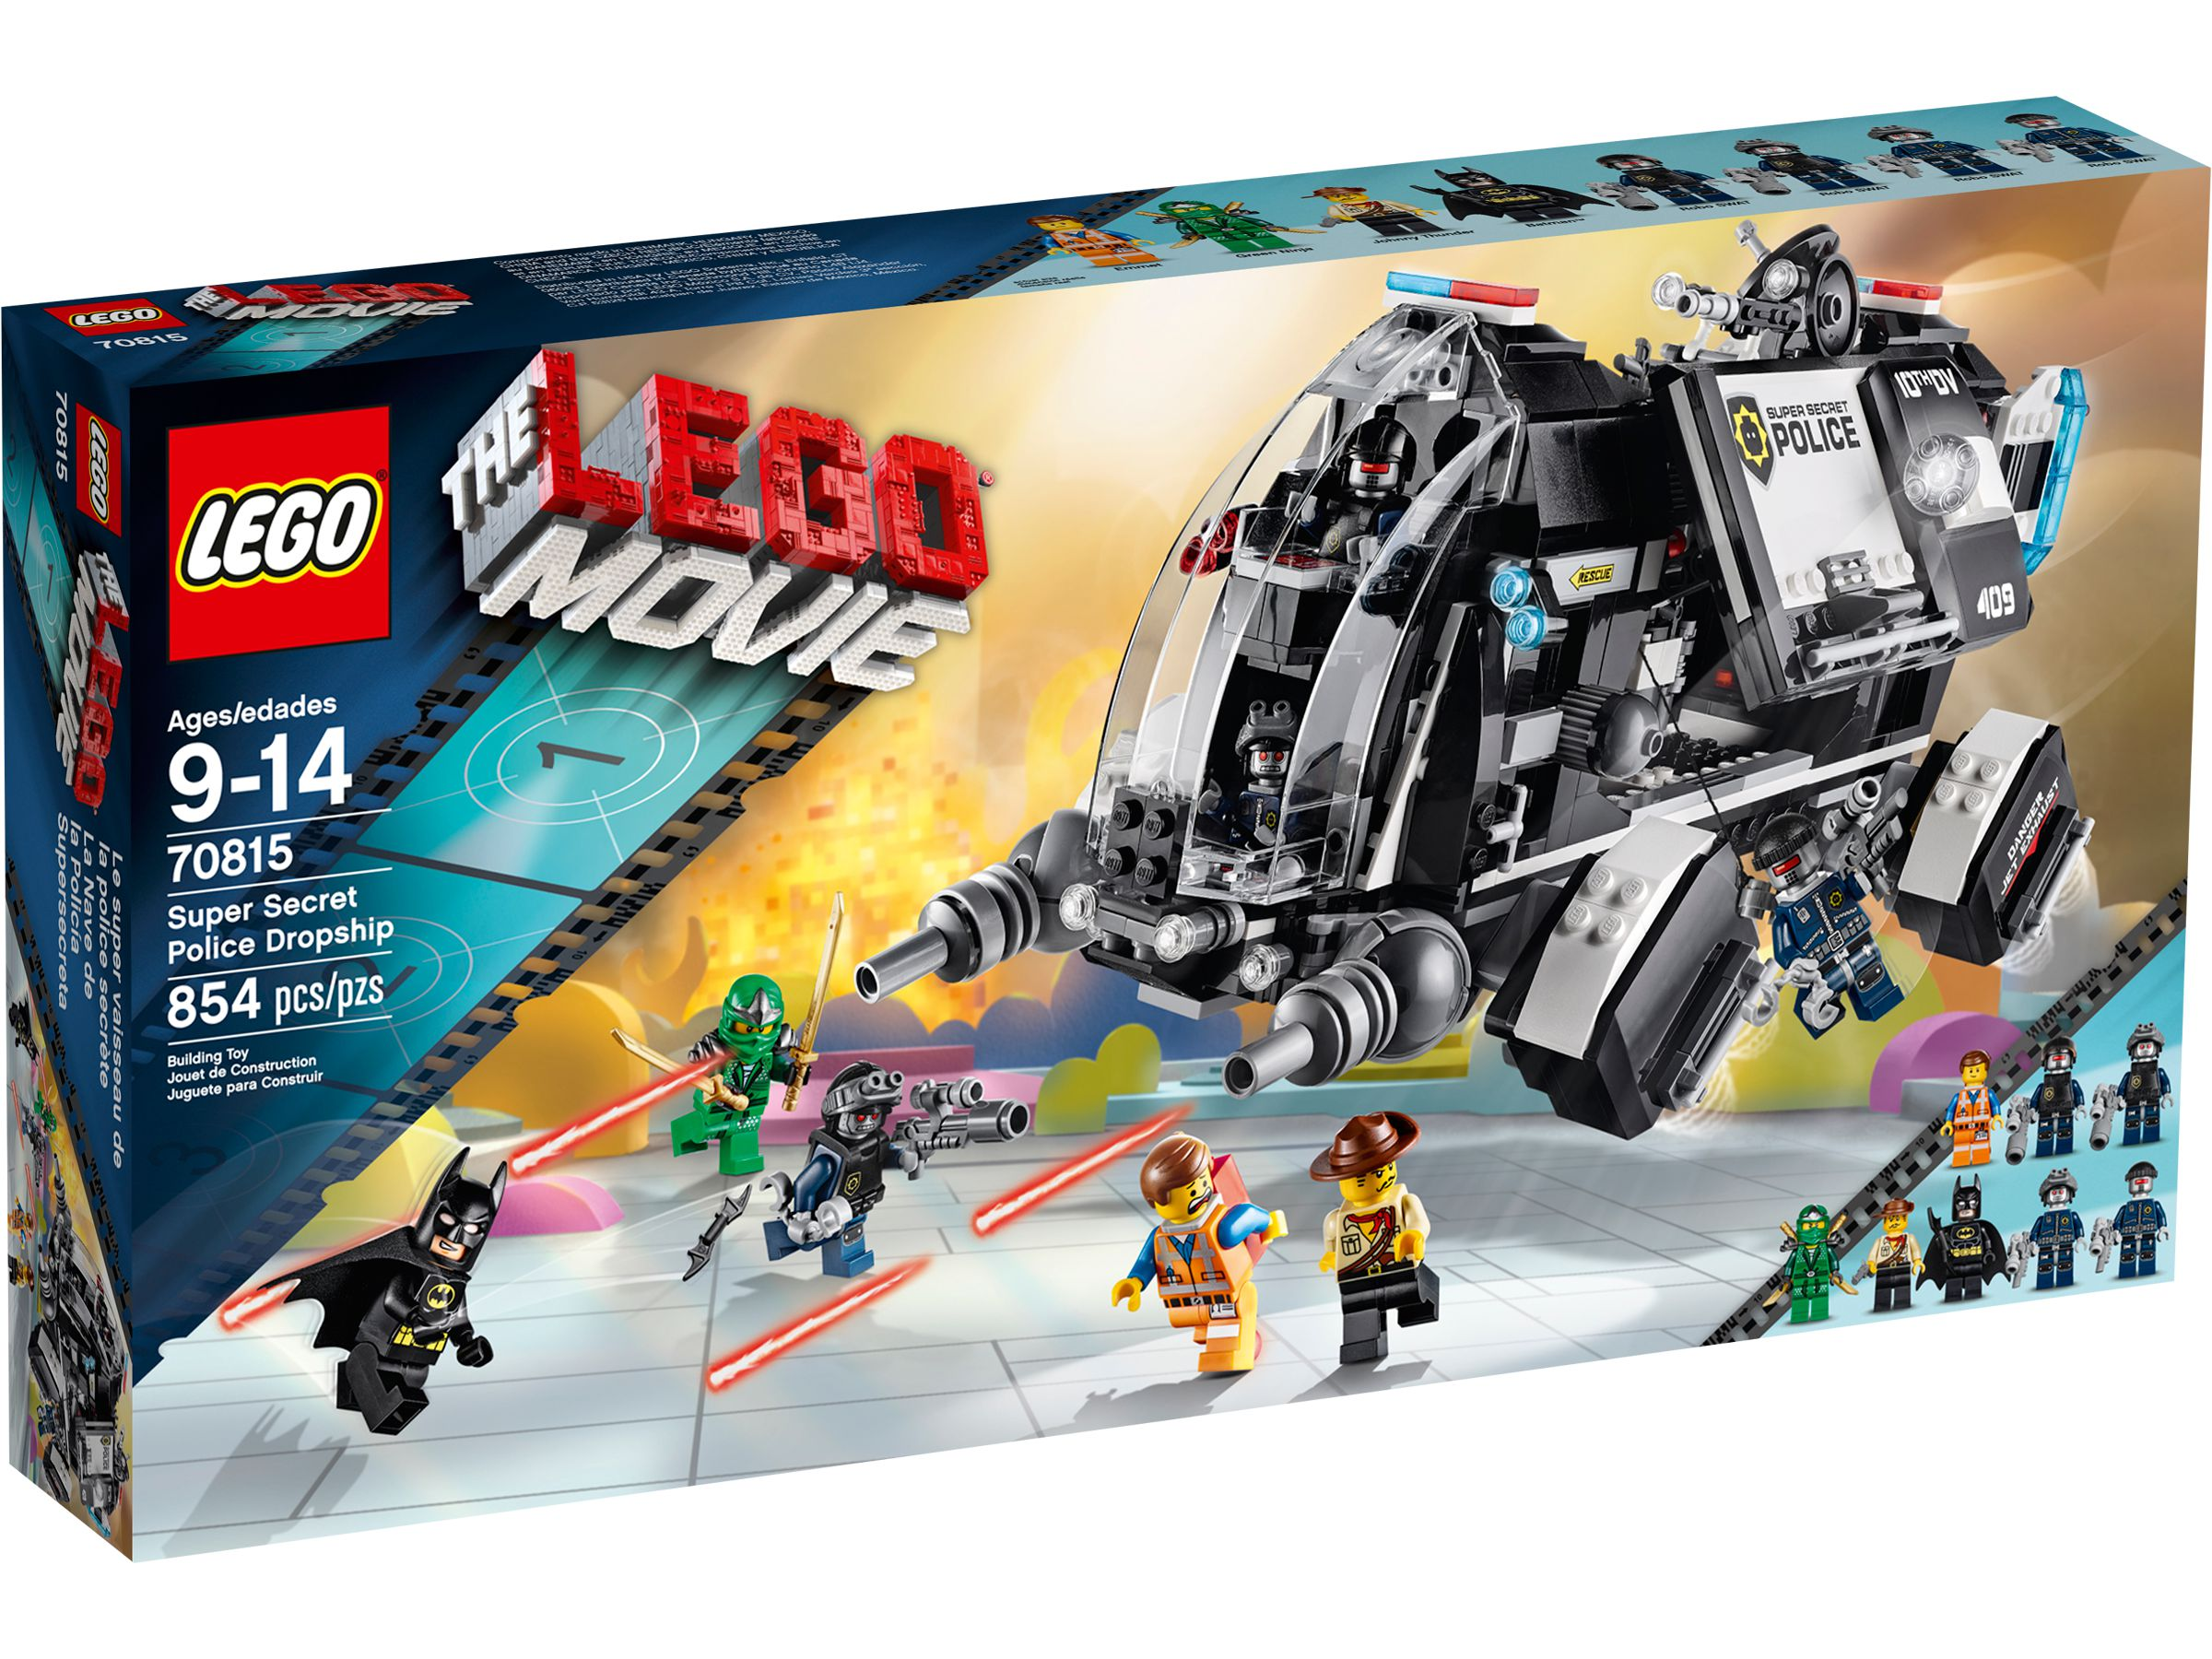 LEGO The LEGO Movie 70815 Raumschiff der Super-Geheimpolizei LEGO_70815_alt1.jpg